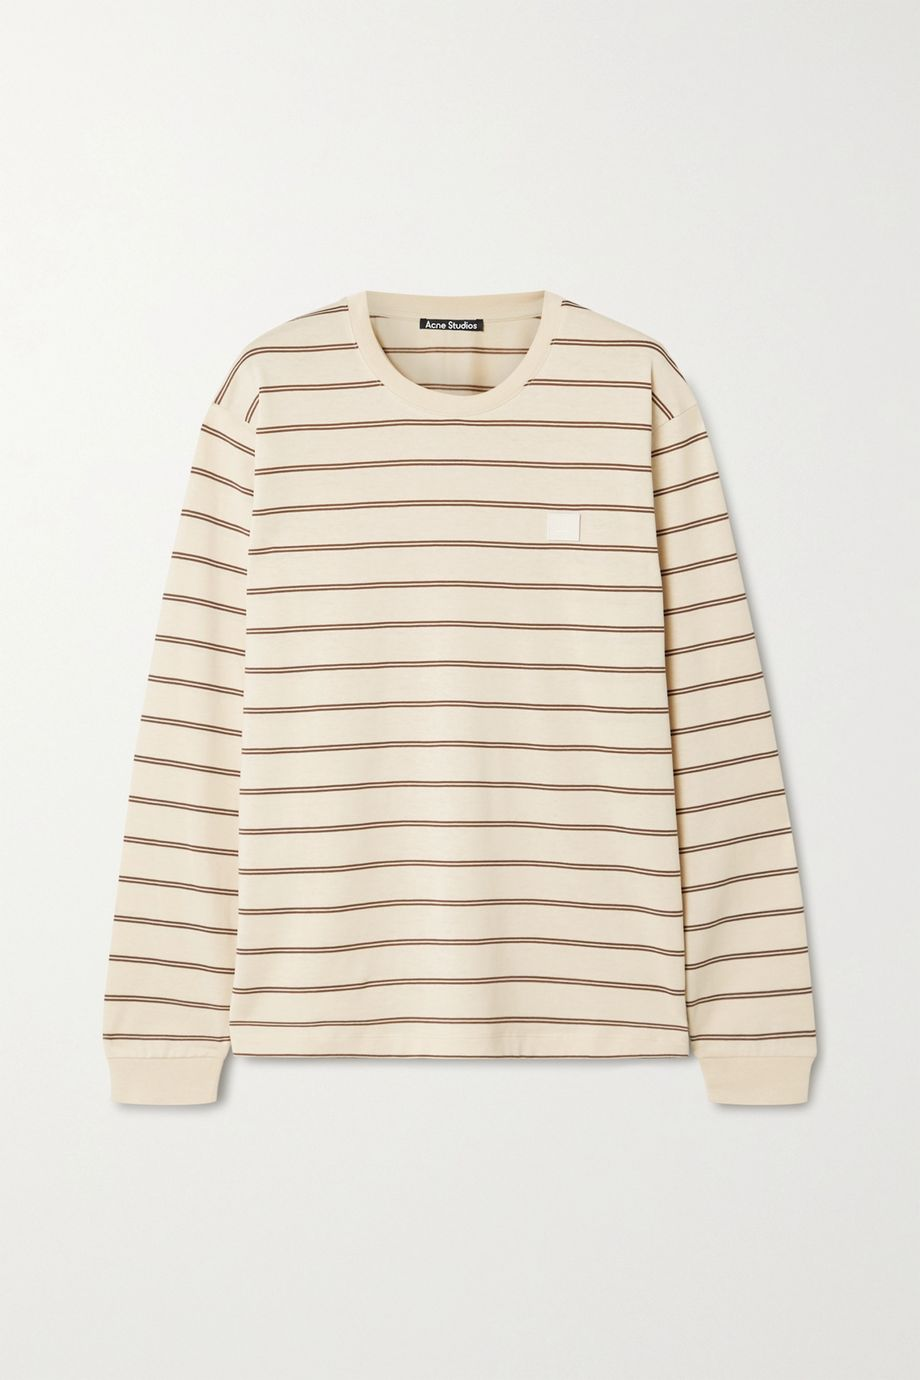 Acne Studios Appliquéd striped cotton-jersey T-shirt